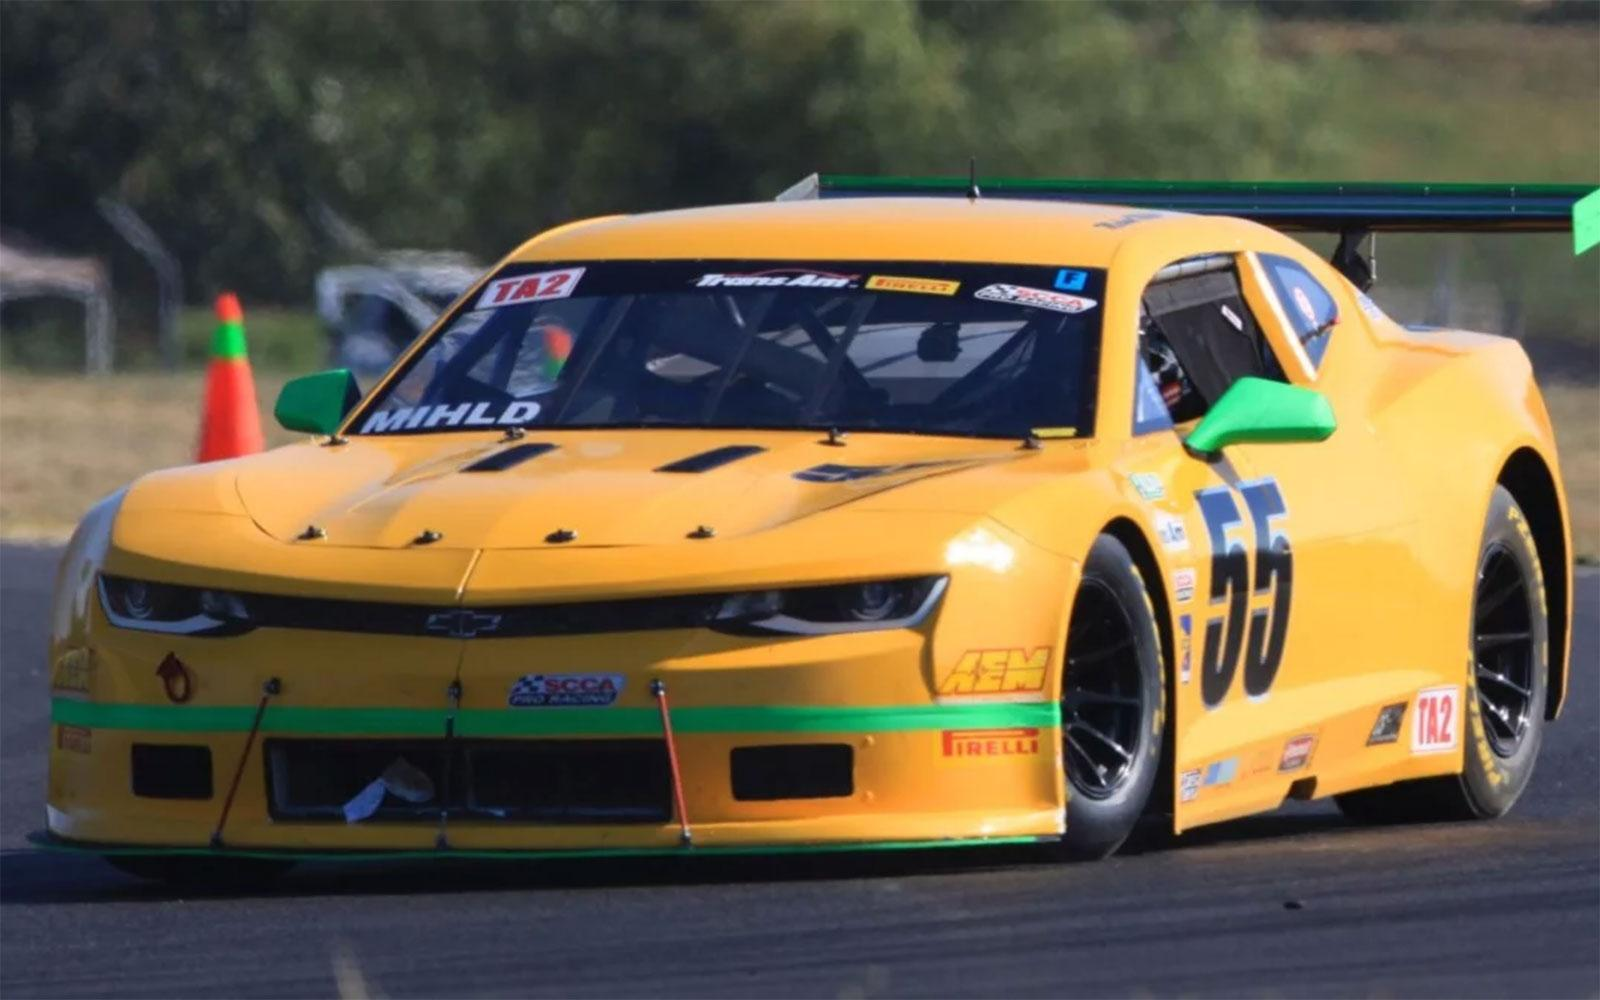 Michael Mihld Talks Trans-Am 2 with Turnology